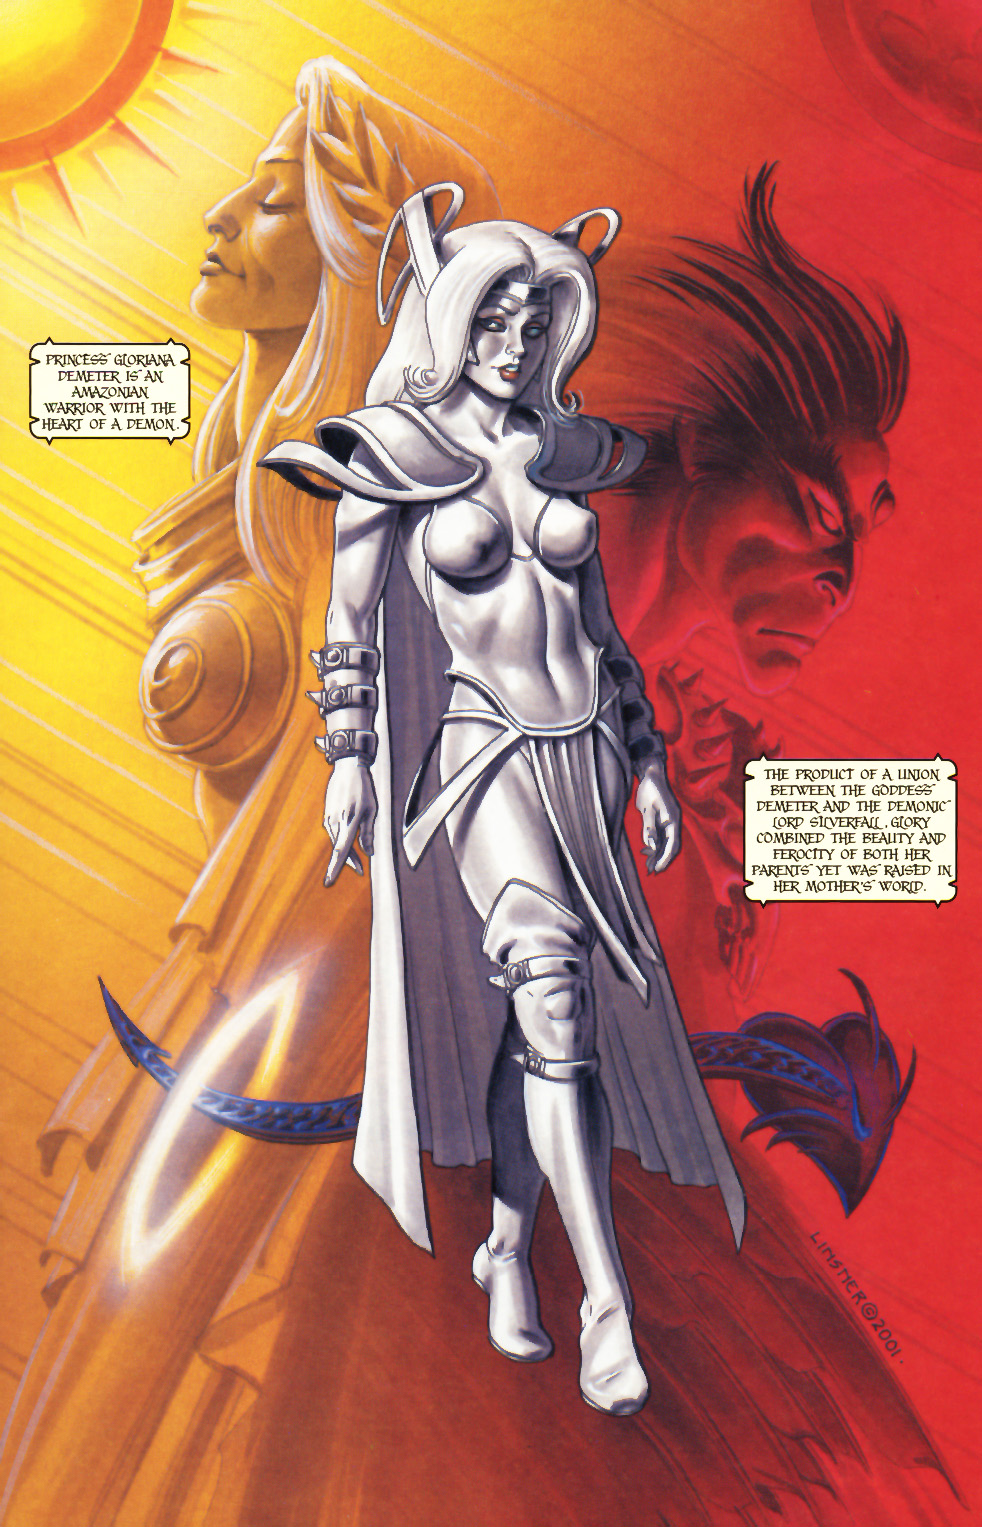 Read online Alan Moore's Glory comic -  Issue #0 - 12